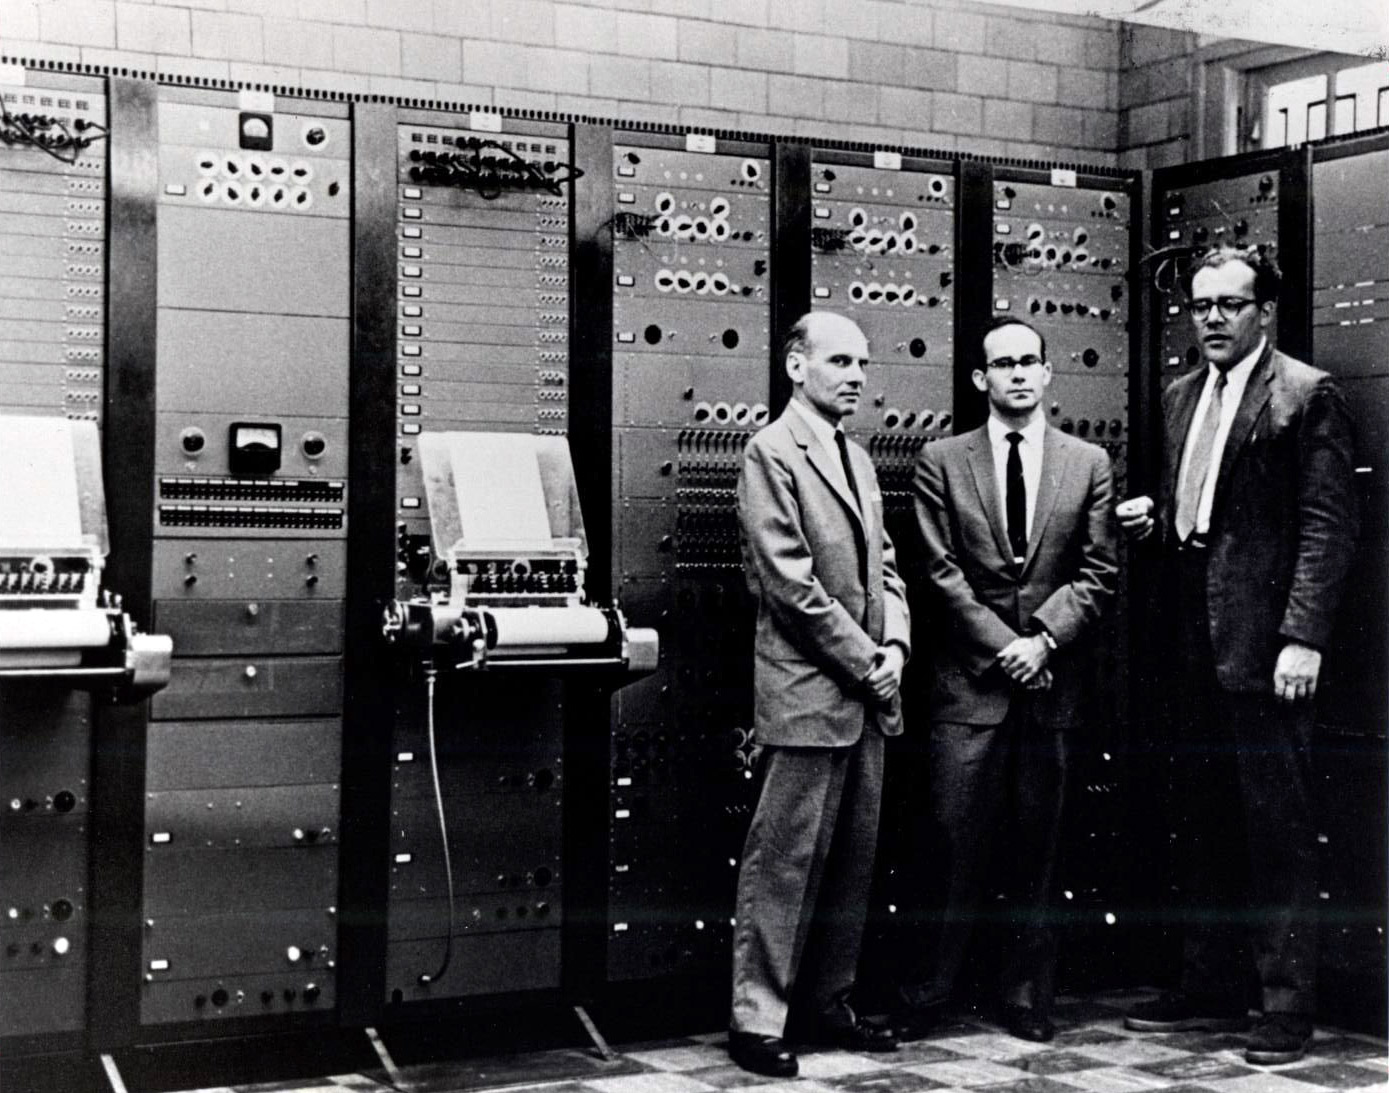 photograph from 1958 of the RCA Mark II Synthesizer